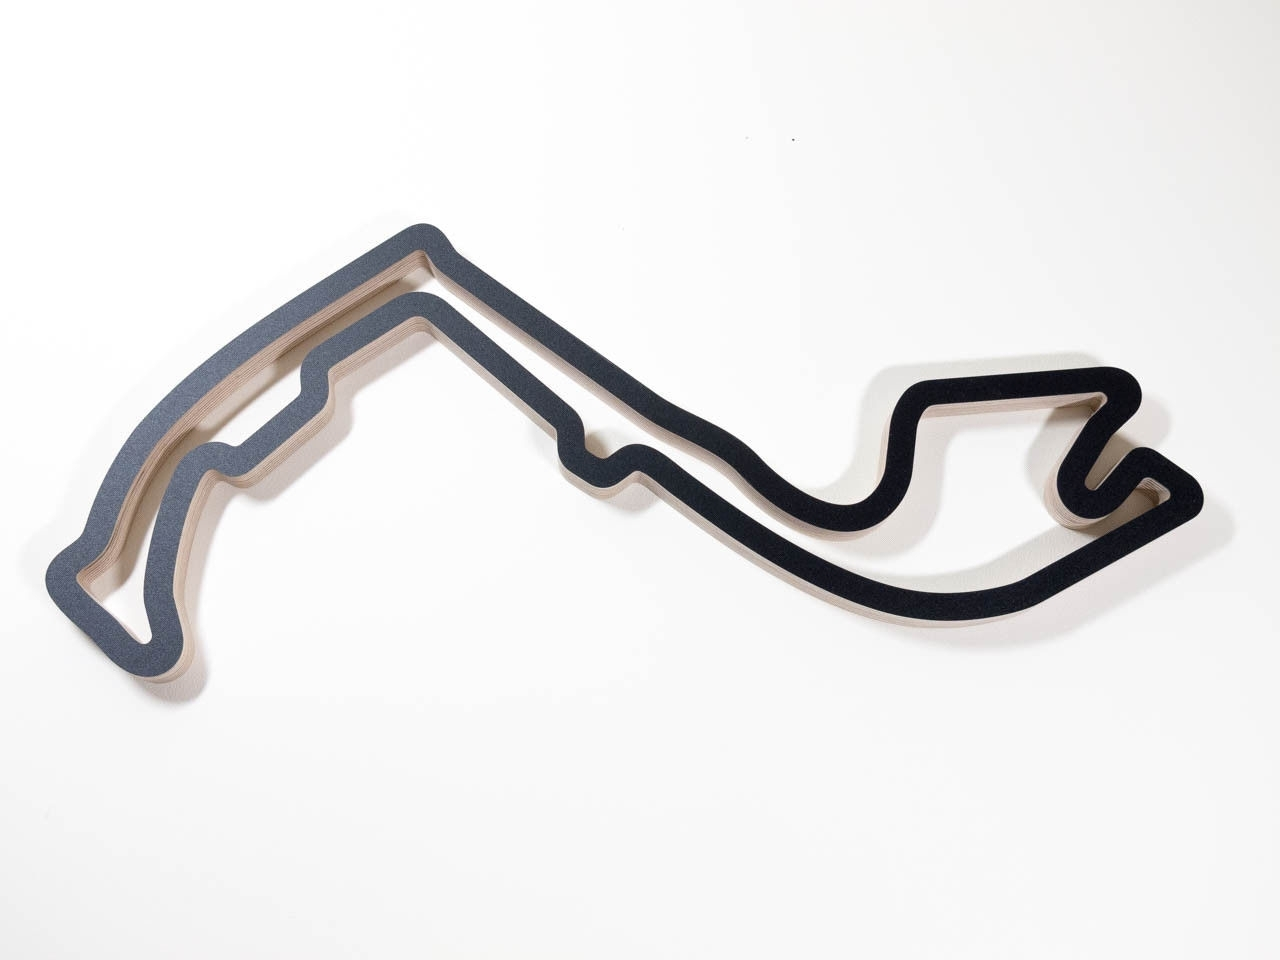 Monaco F1 Grand Prix Motorsport Racing Track Wall Art Wooden For Most Recent Race Track Wall Art (Gallery 7 of 20)